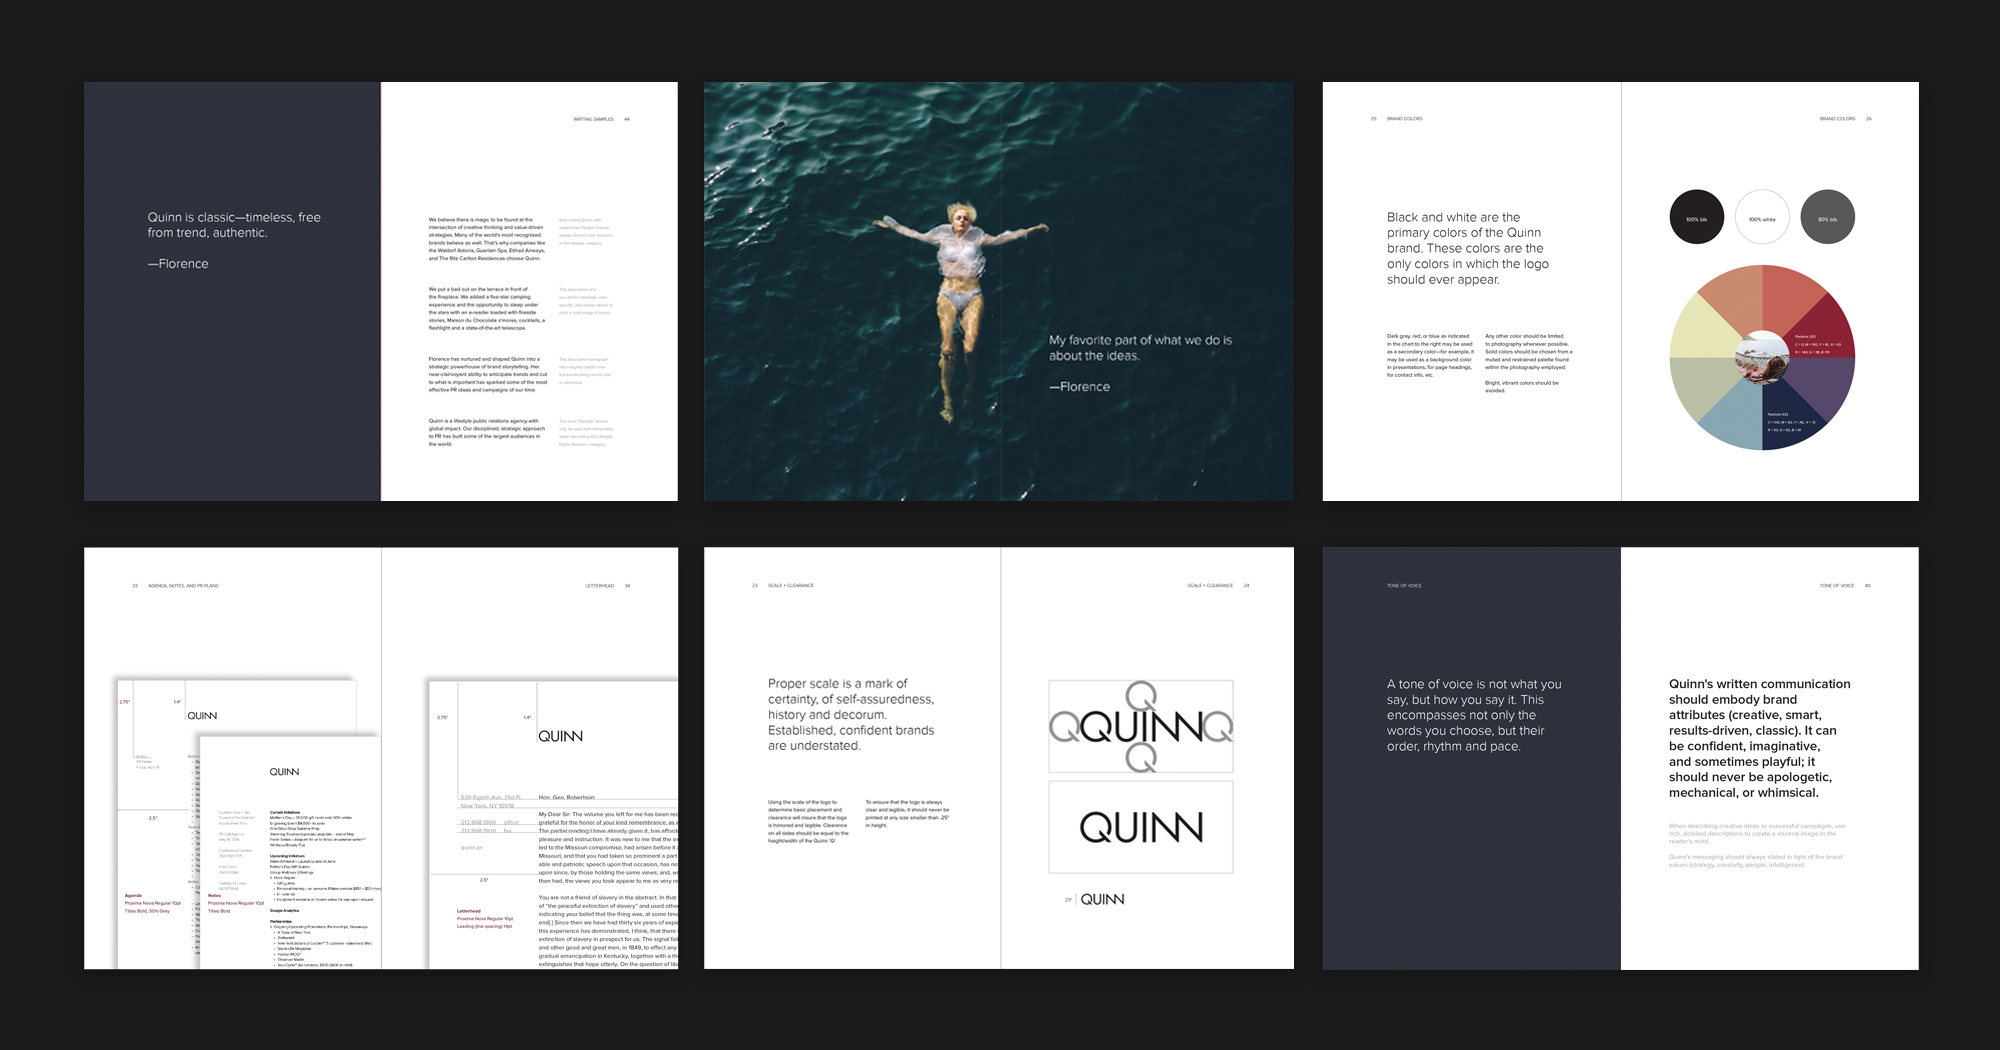 Quinn brand guide book with logo design, stationery, color palette, messaging